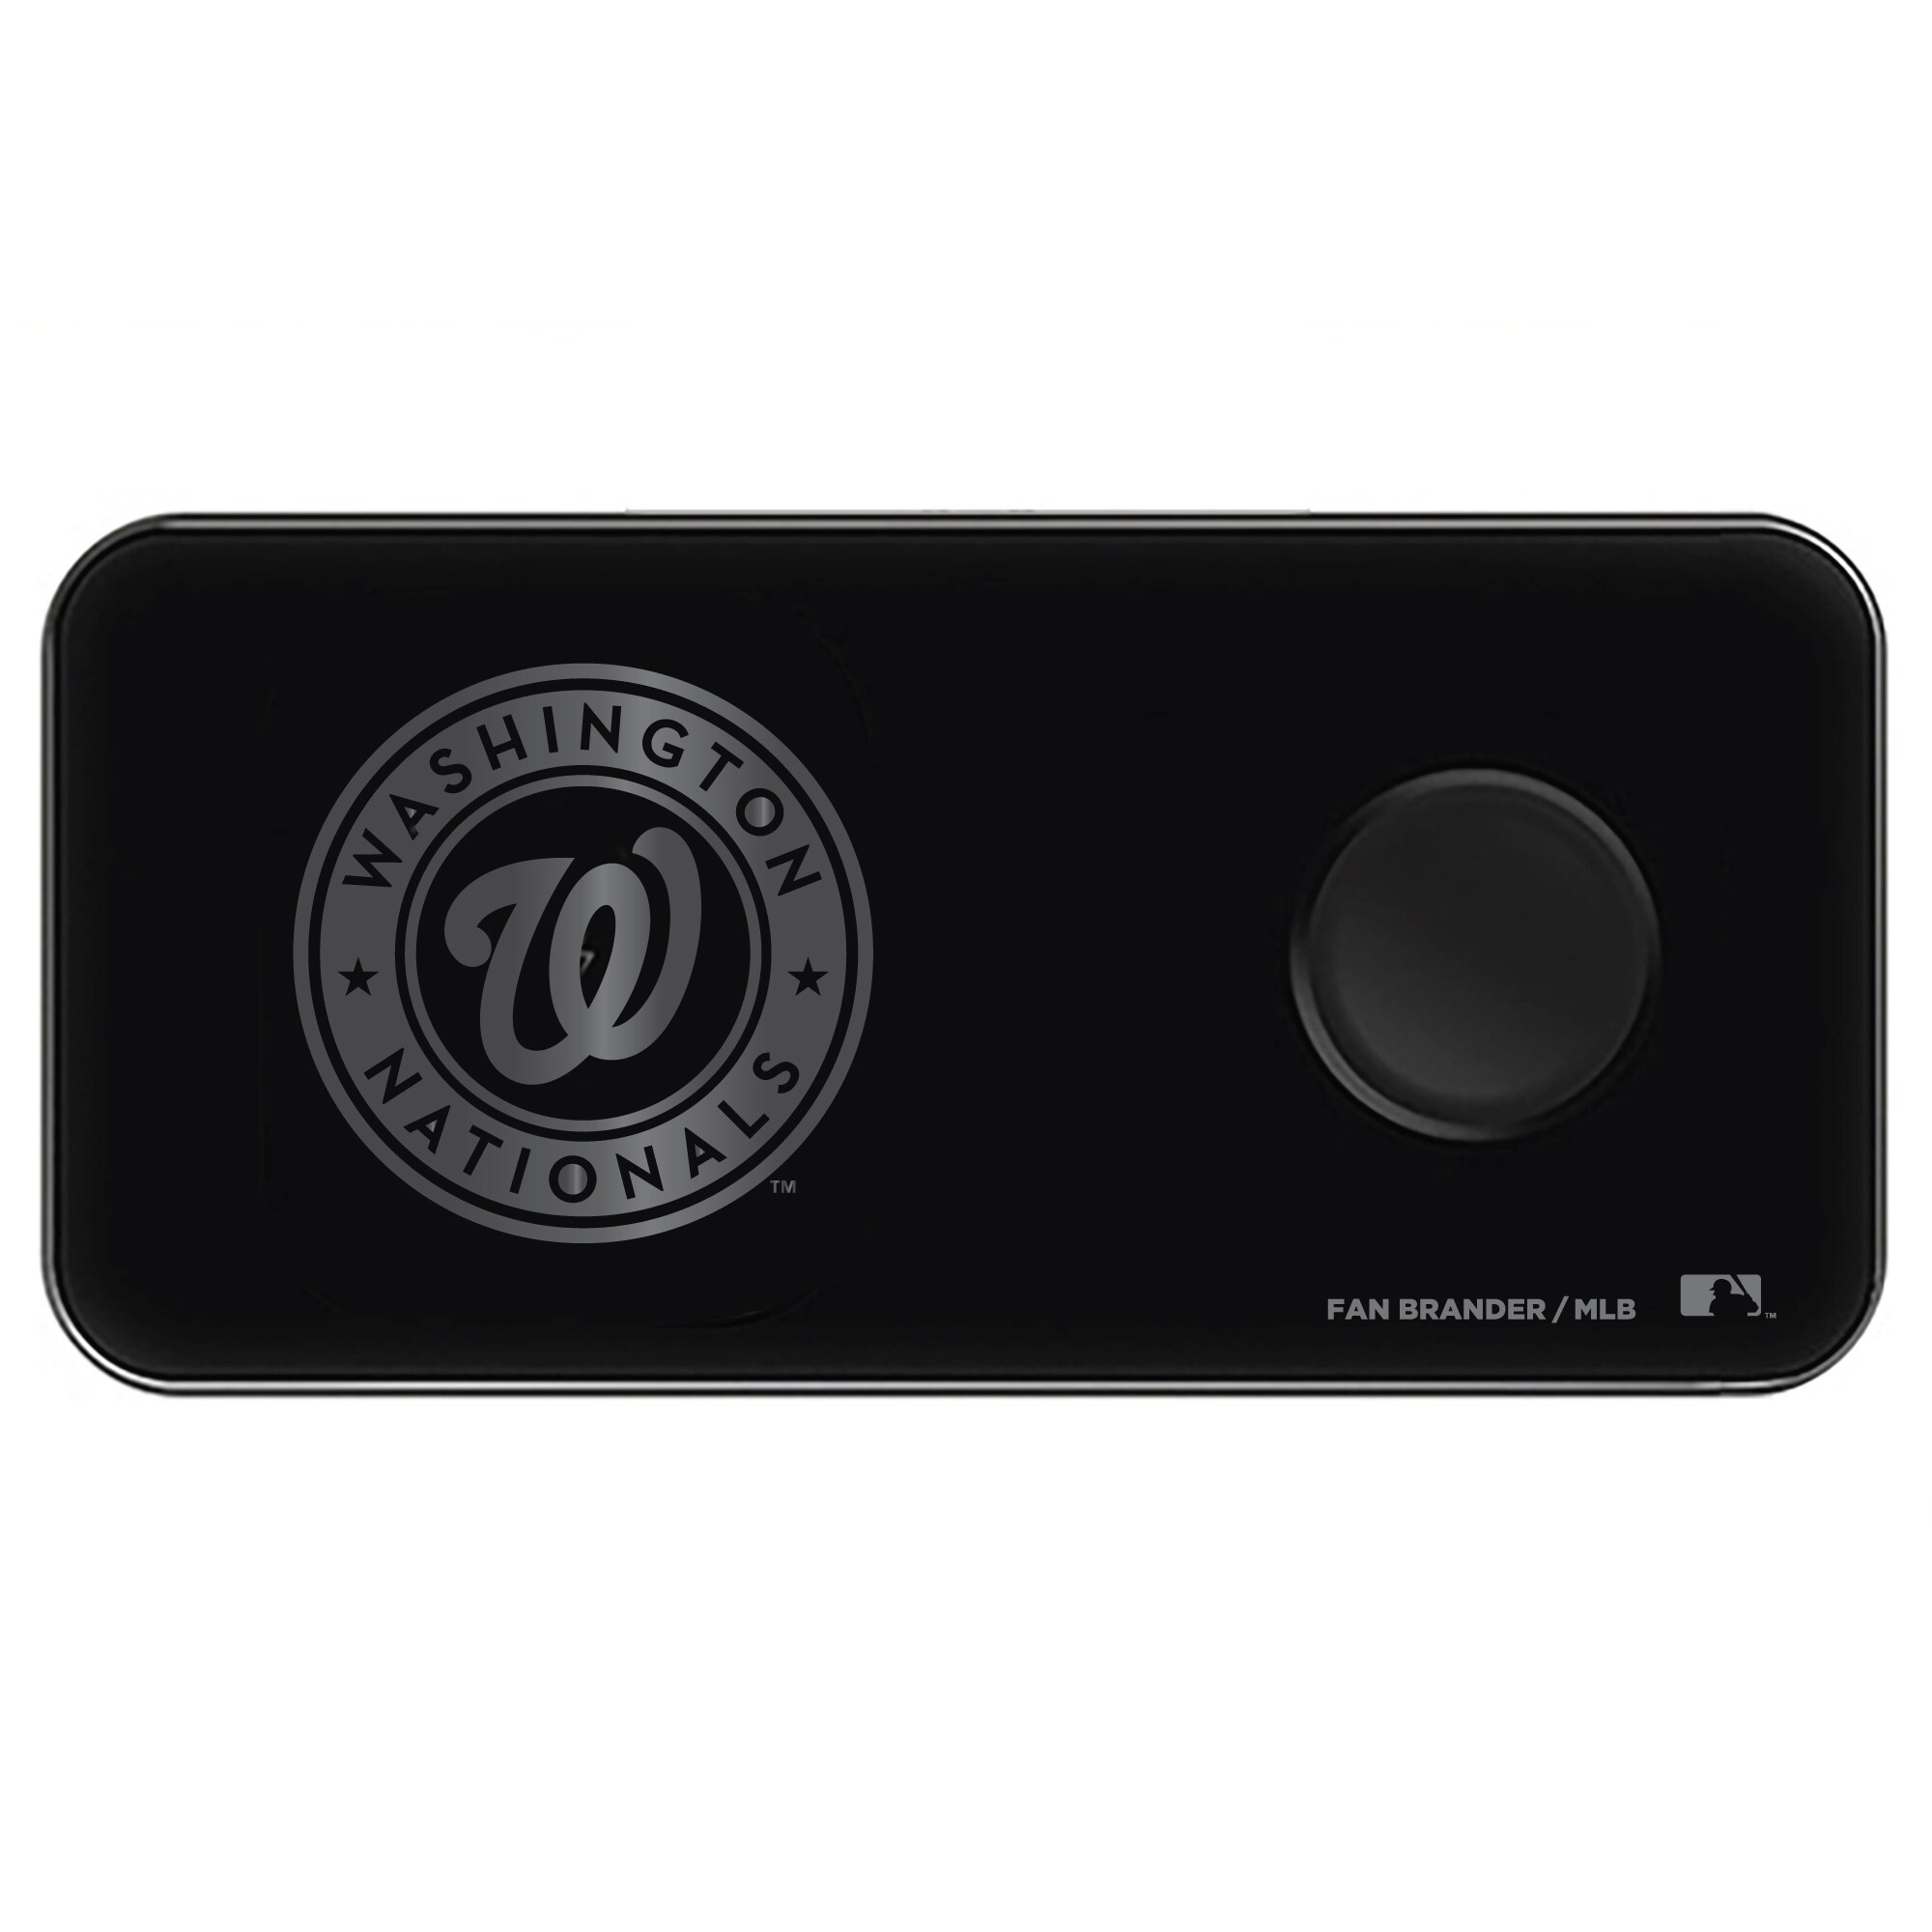 Washington Nationals 3-in-1 Glass Wireless Charge Pad - Black